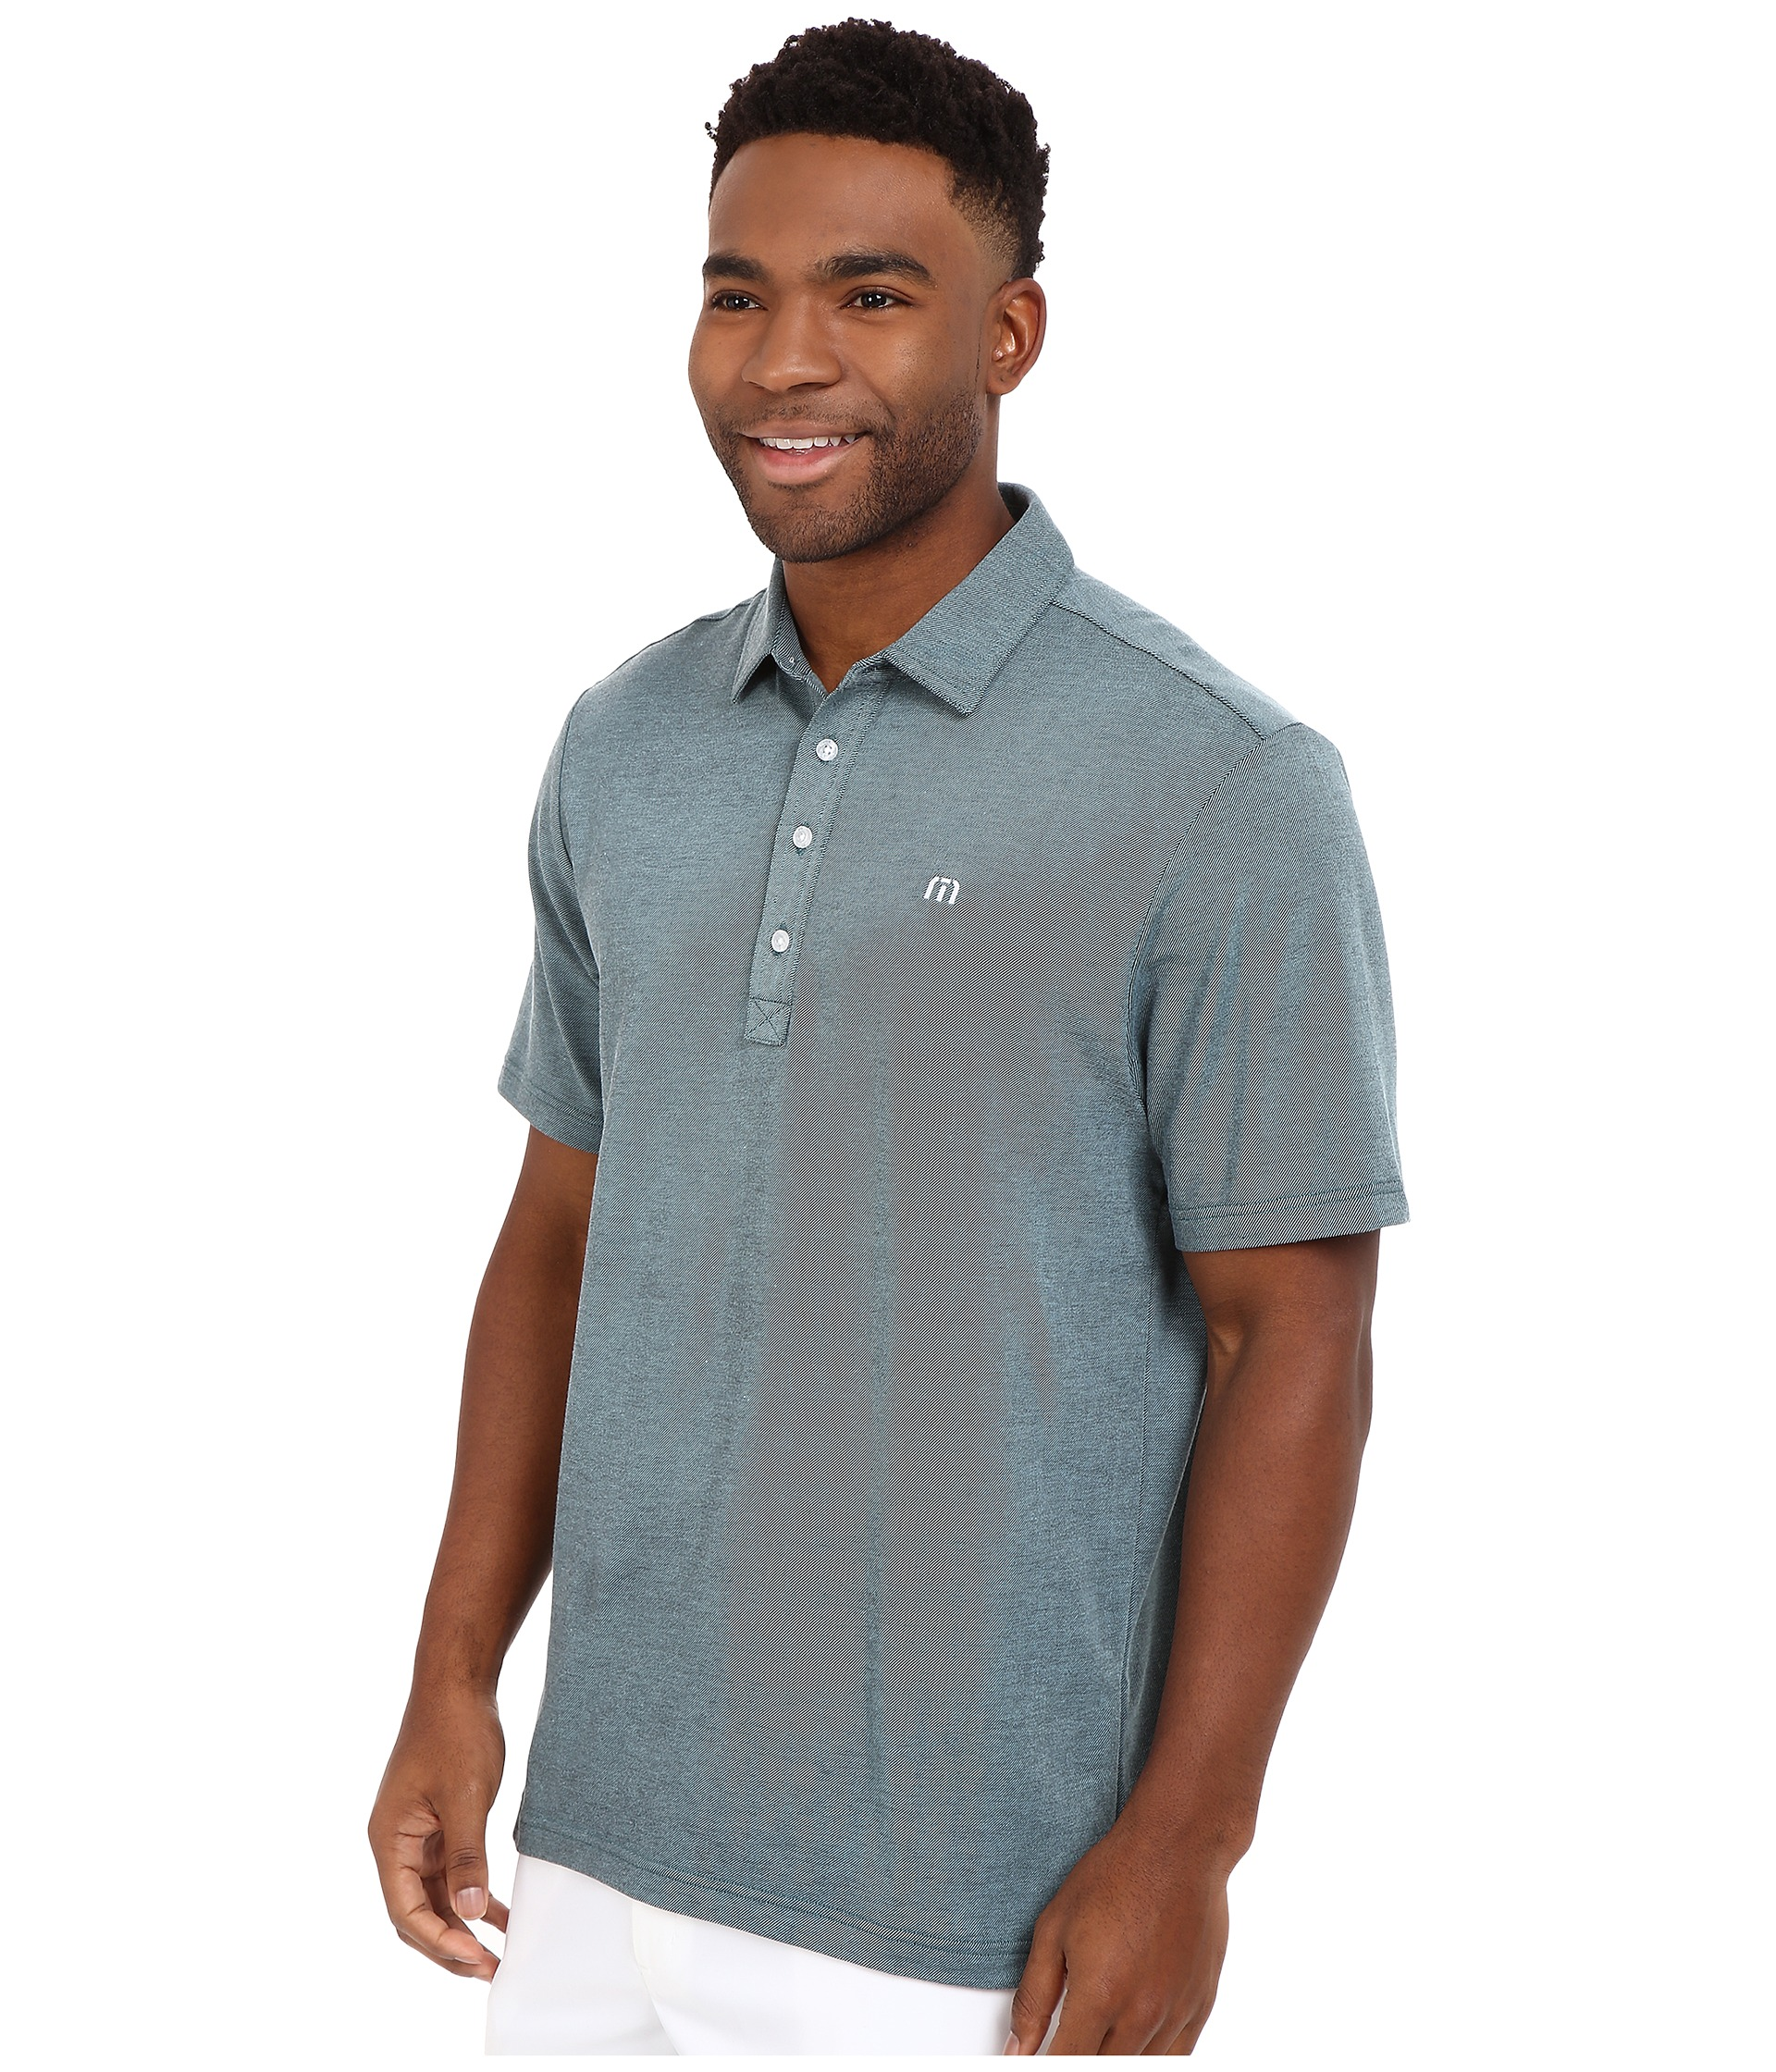 Travis Mathew is a fresh and progressive brand of golf apparel that Travis Shop Our Huge Selection· Explore Amazon Devices· Fast Shipping· Read Ratings & Reviews.